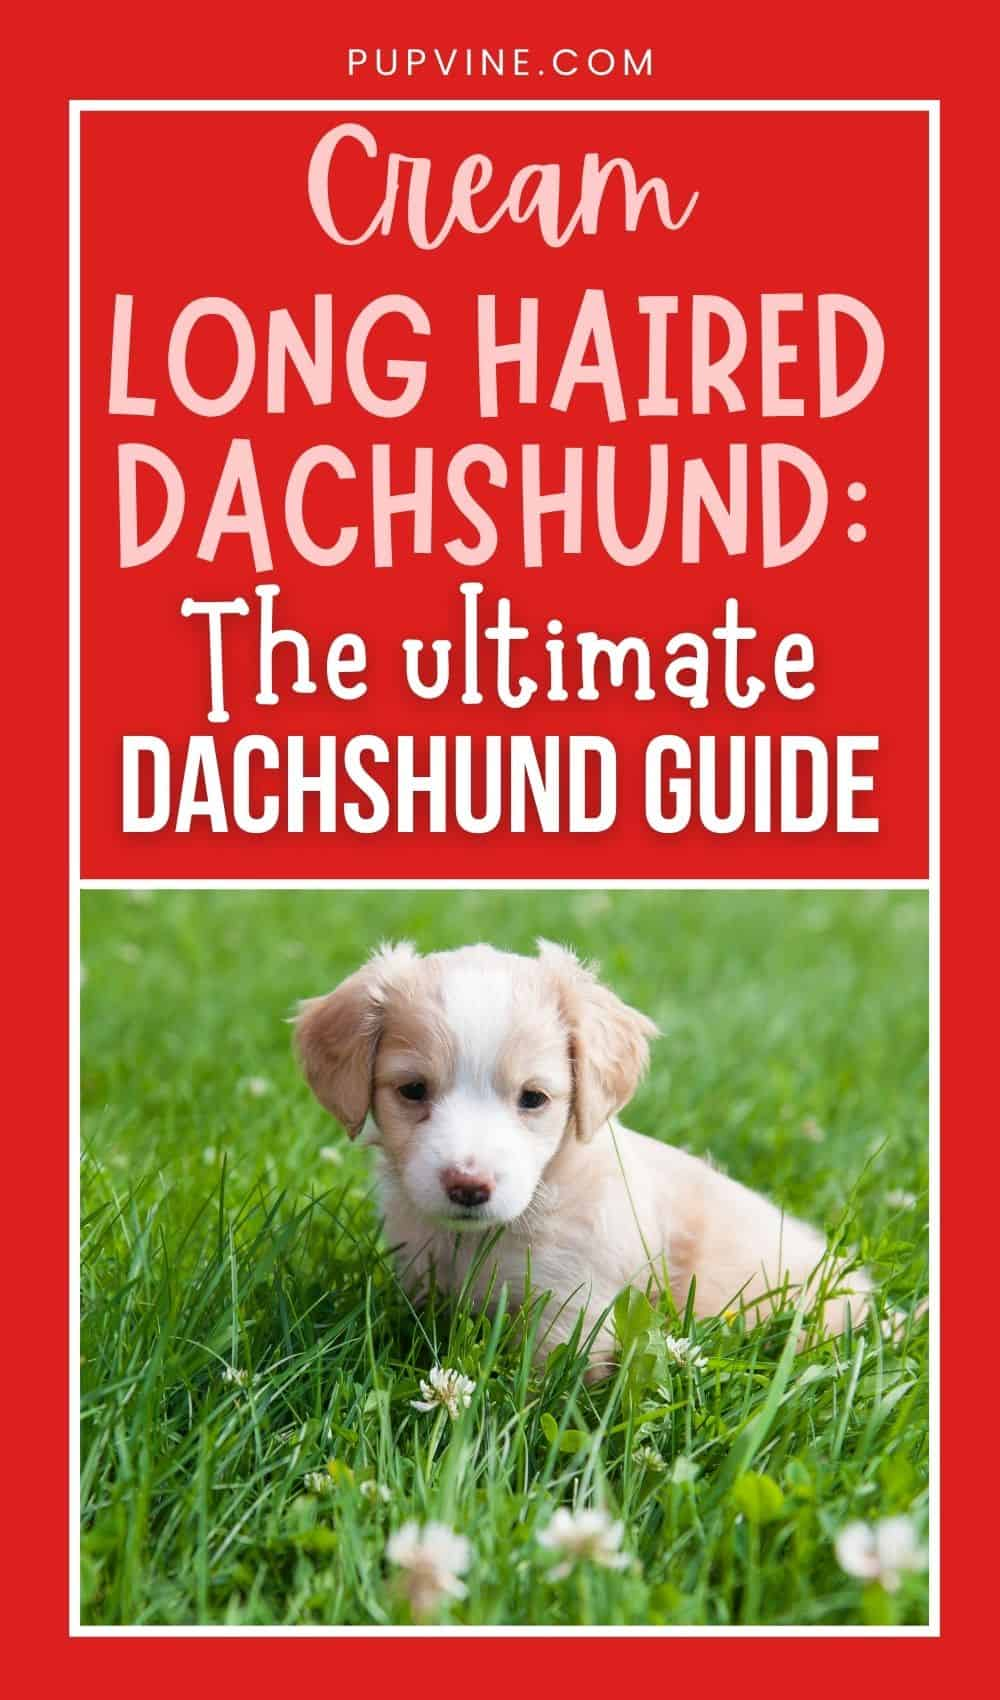 Cream Long Haired Dachshund: The Ultimate Dachshund Guide